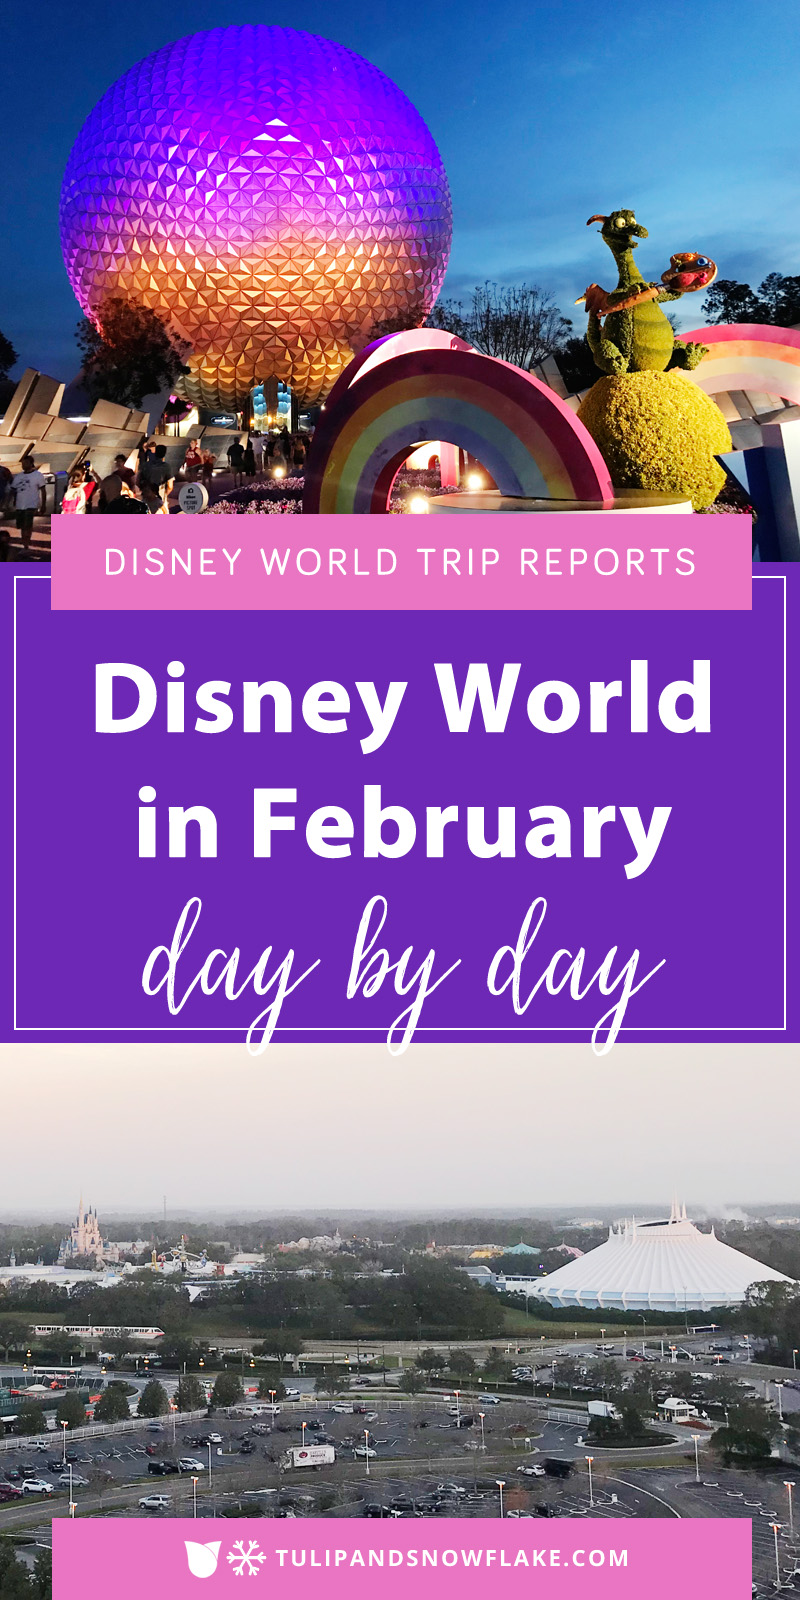 Disney World in February trip reports